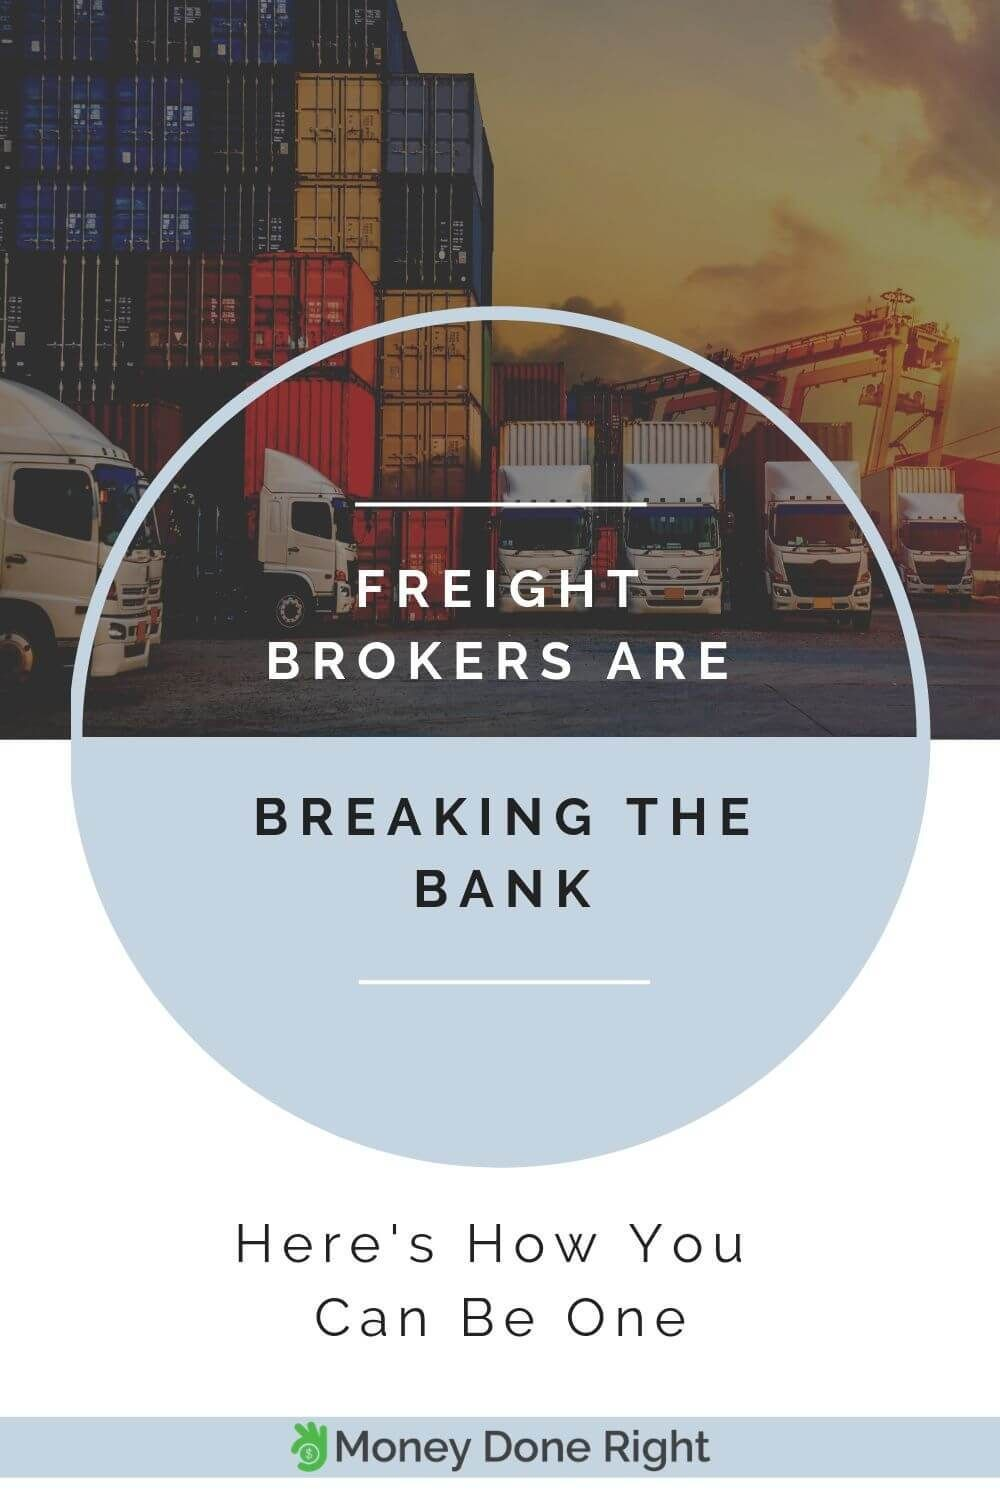 How to a Freight Broker With No Experience Money